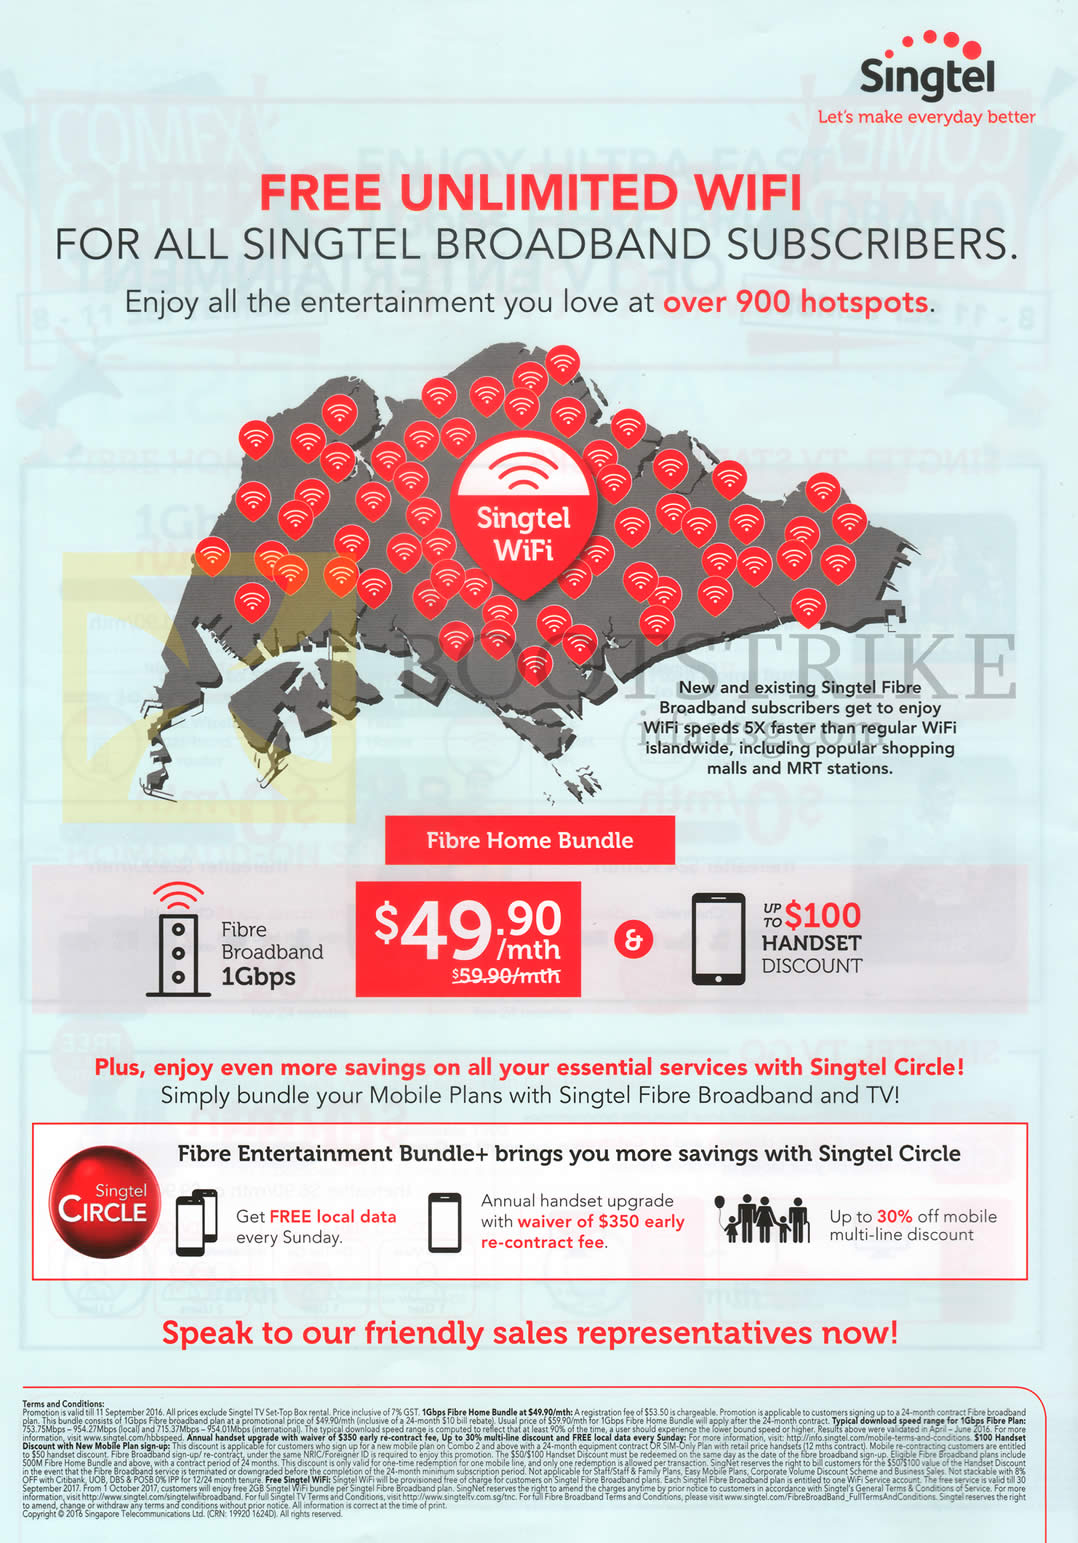 COMEX 2016 price list image brochure of Singtel Fibre Home Bundle 49.90 1Gbps